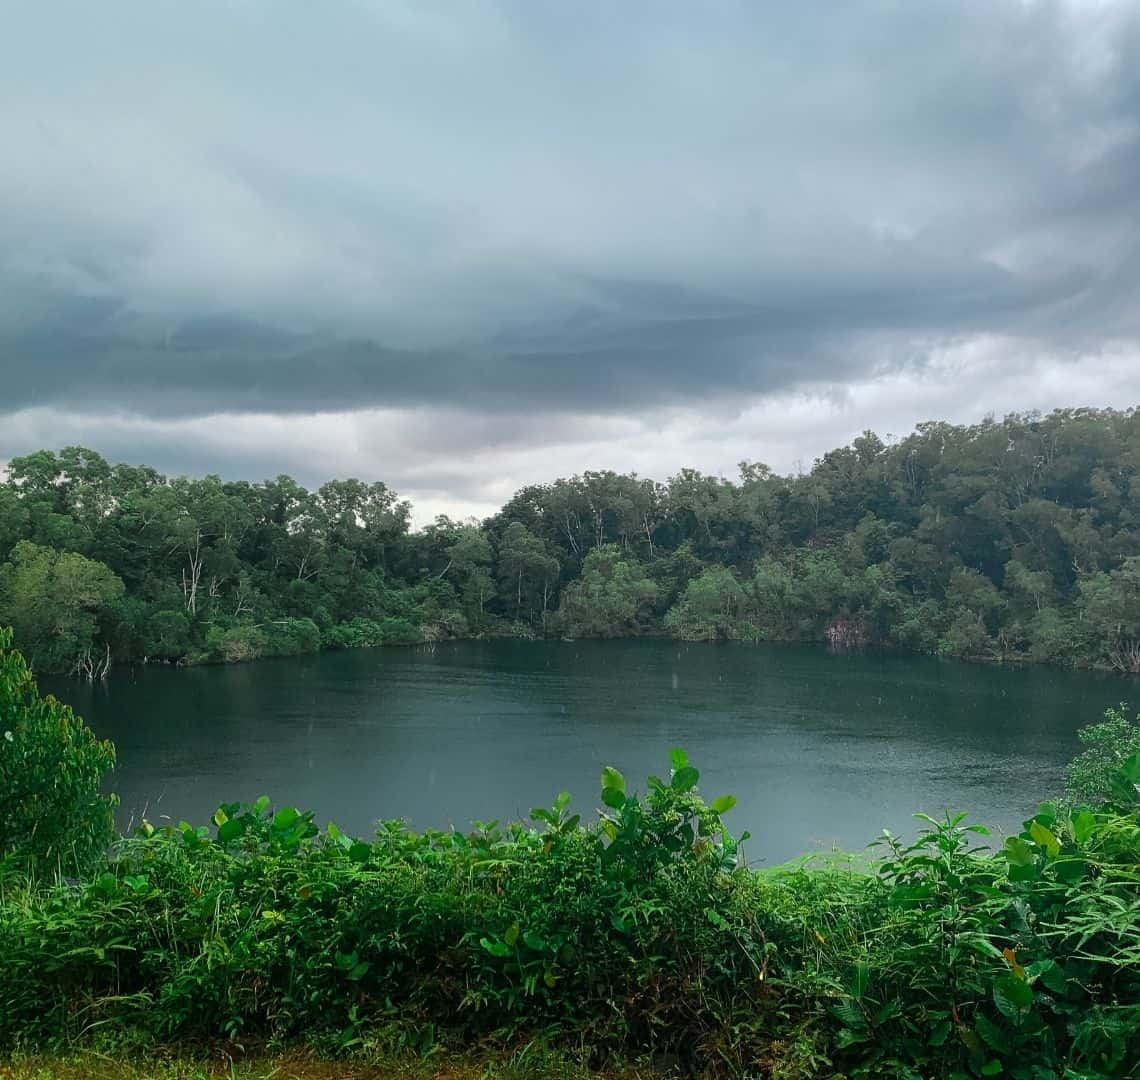 Bright green foliage at the bottom gives way to the dark water in teh quarry. It is surrounded by trees. The sky has dark storm clouds.